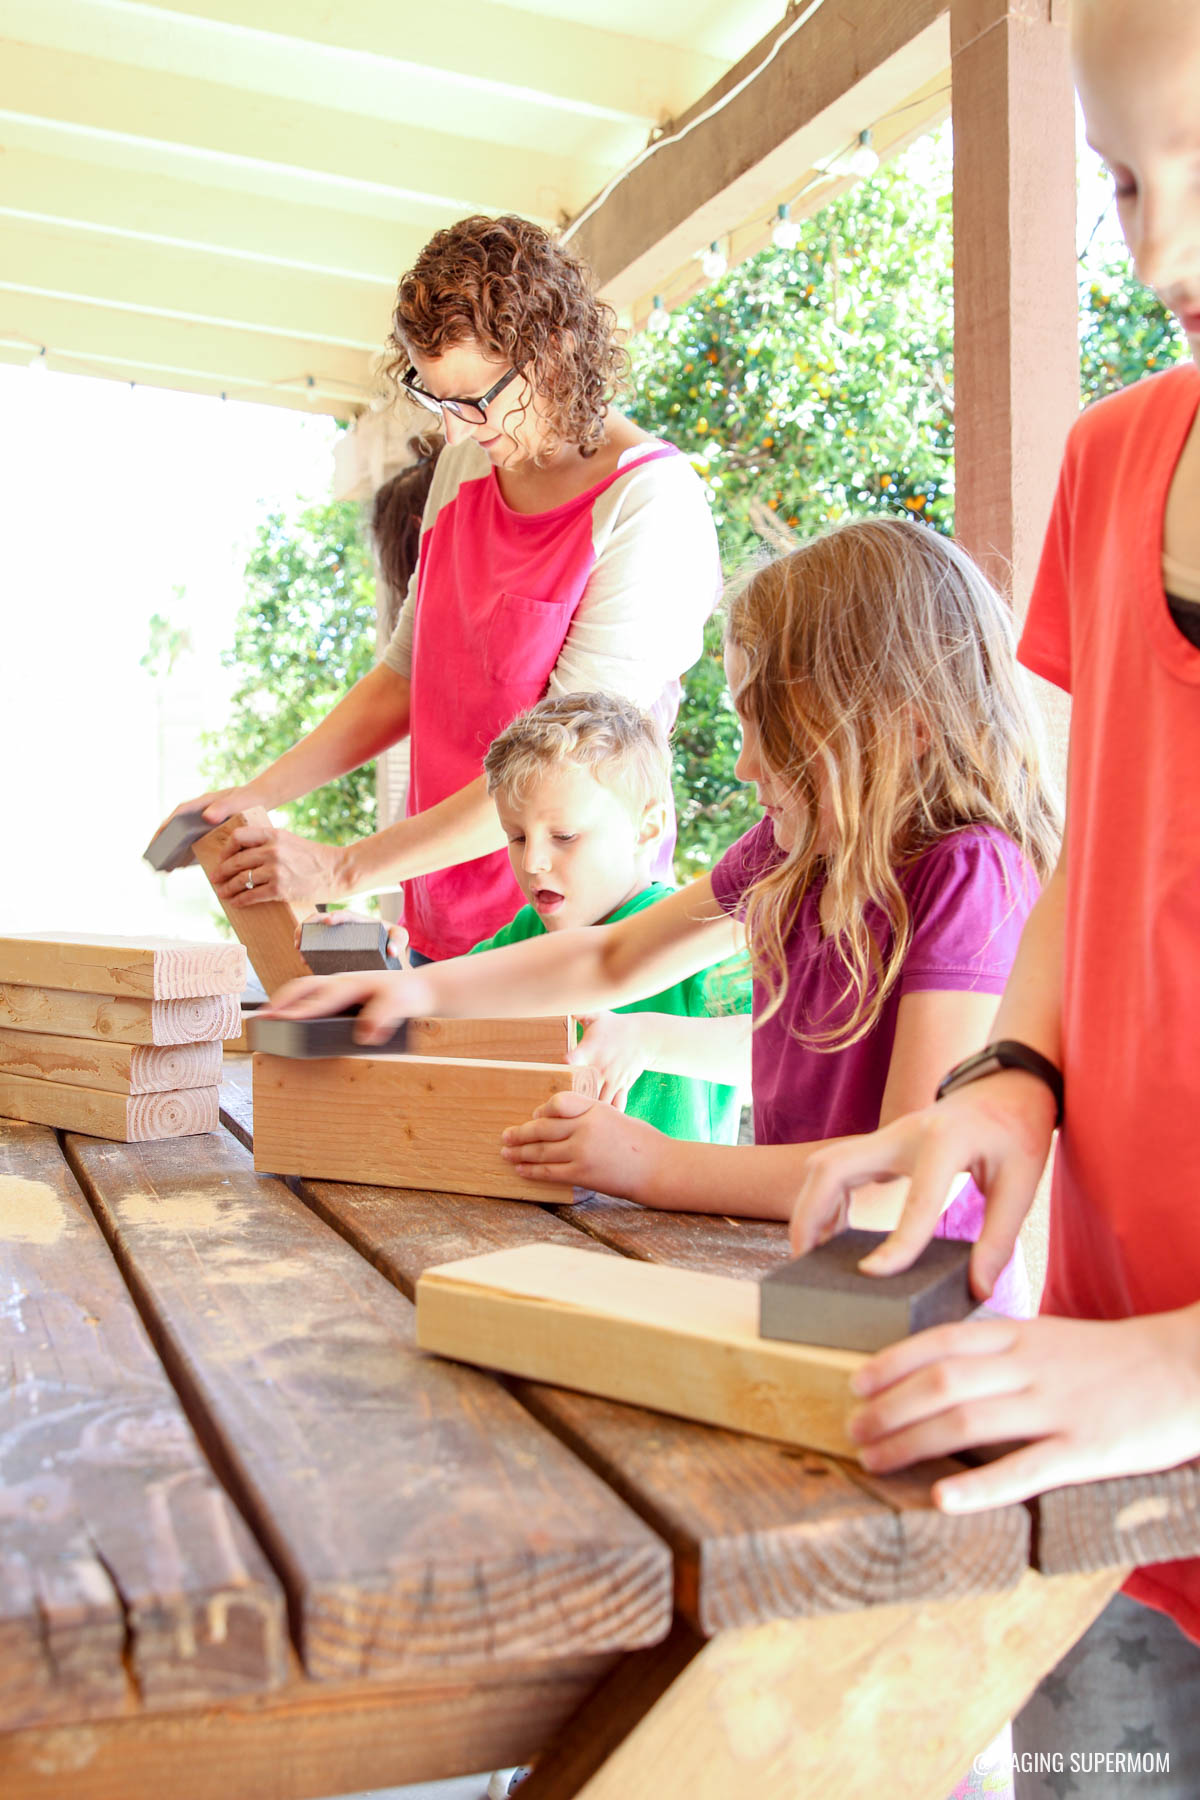 Sanding Giant Jenga-Inspired Stacking Game @HomeDepot via @PagingSupermom